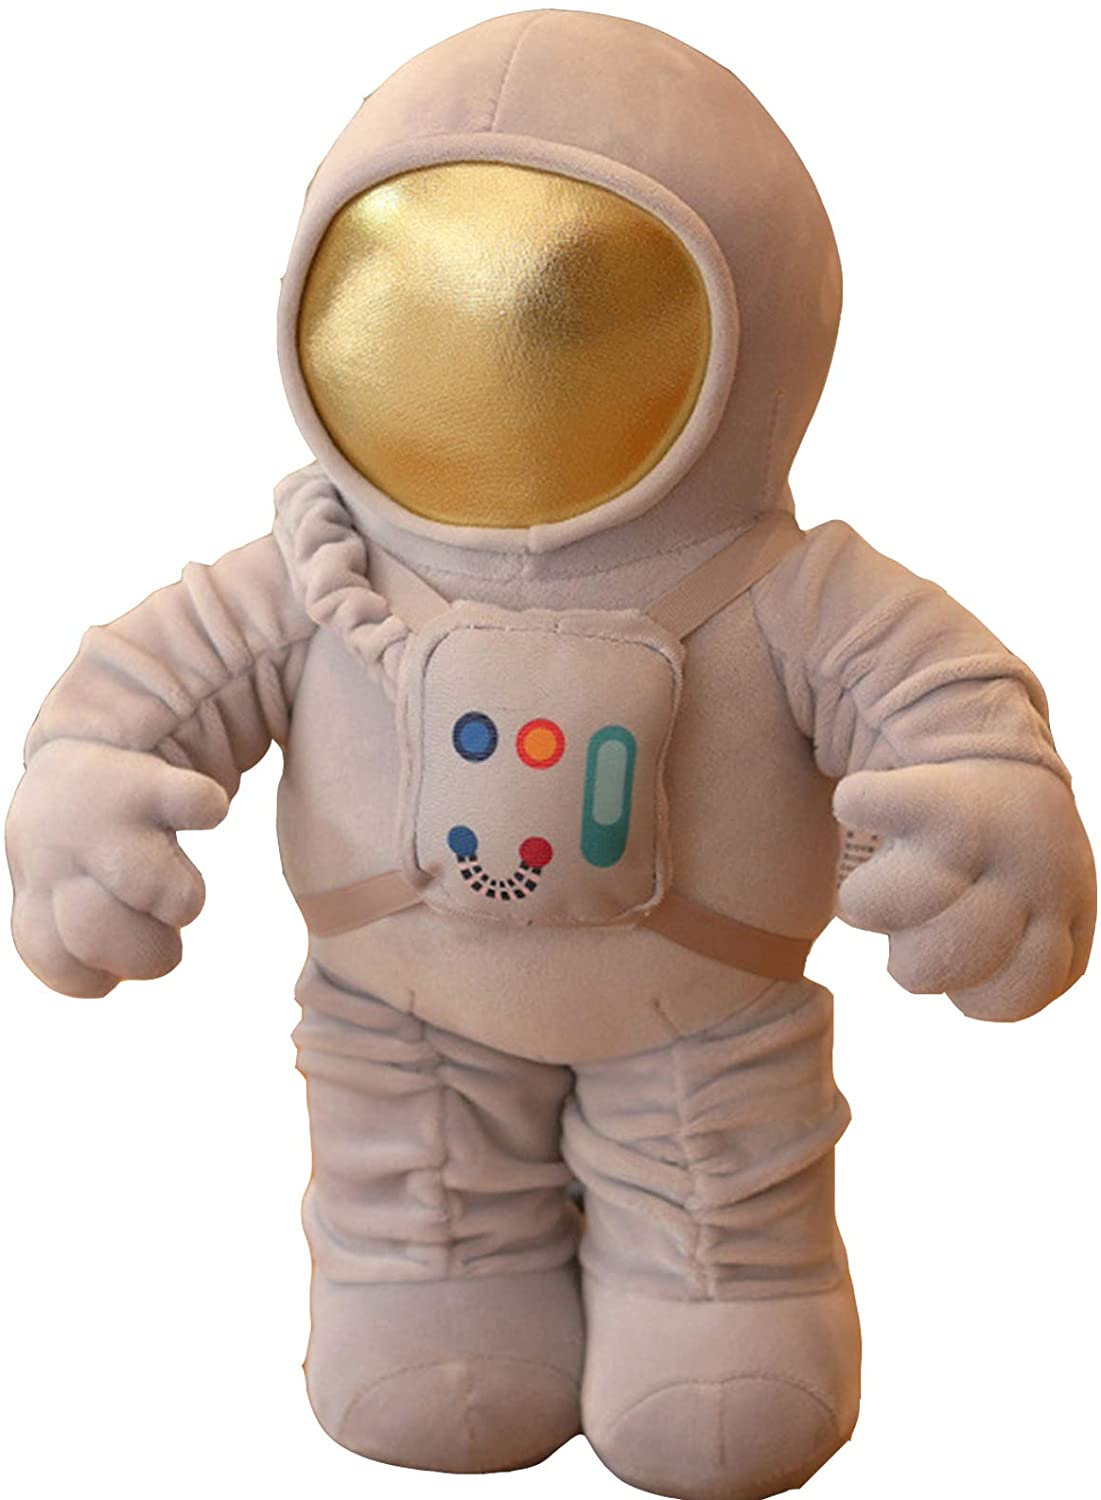 ZoeSun Astronaut Plush Toy Stuffed Plushie Spaceman Doll Plush Hugged Pillow Cushion Space Toys with Removable Backpack Kids Imagination Creativity Toy Decorations 12 in/24 in/40 inch